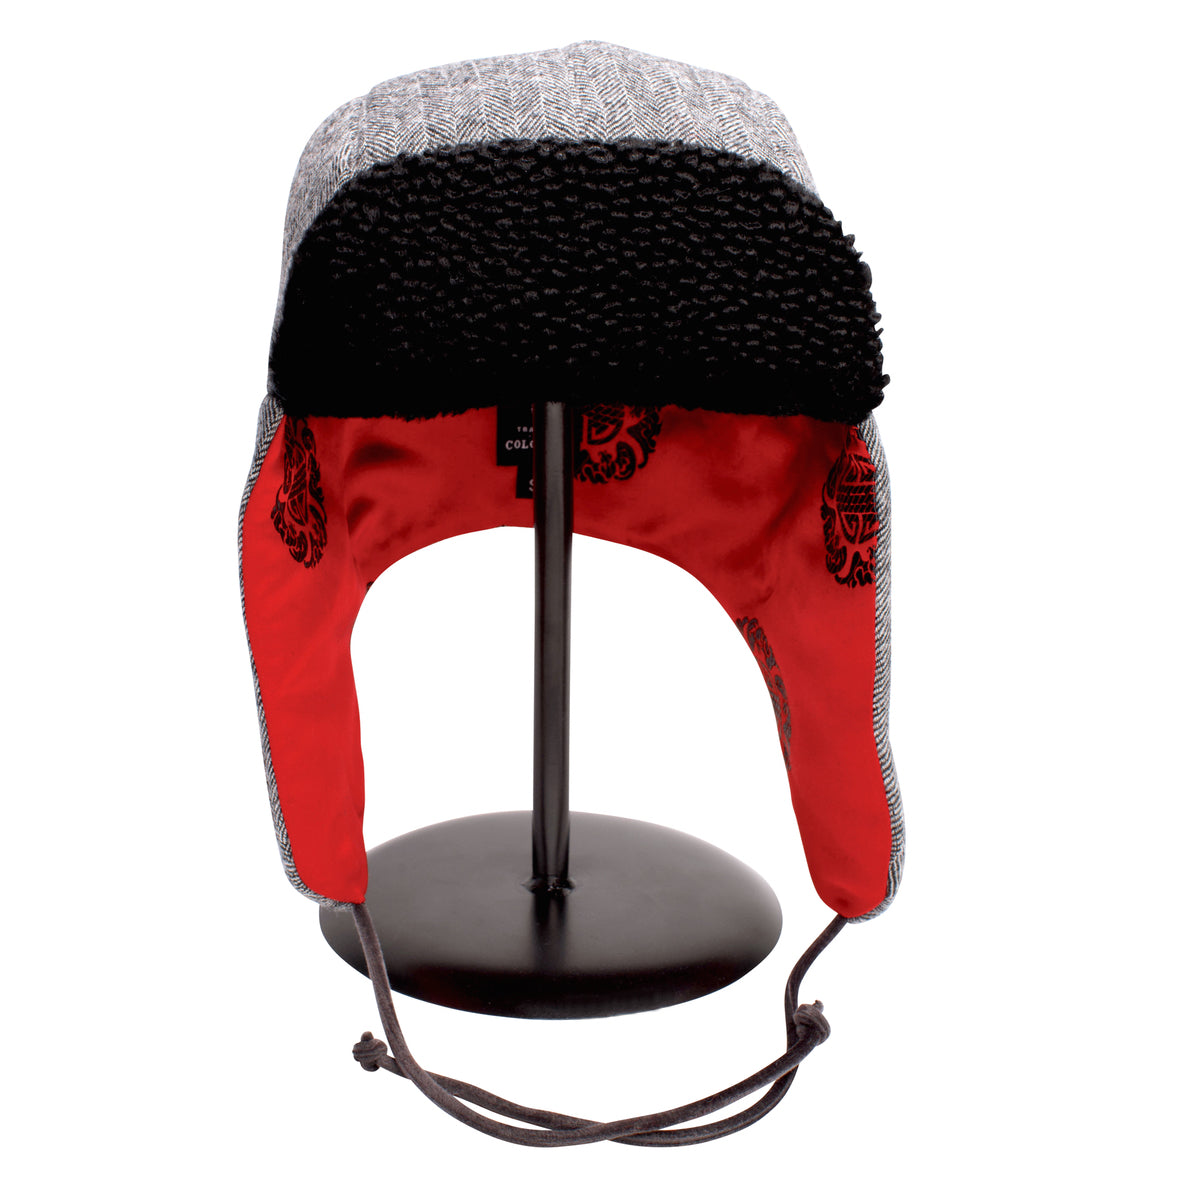 """1876"" Hat - Black & White Wool With Red Lining"